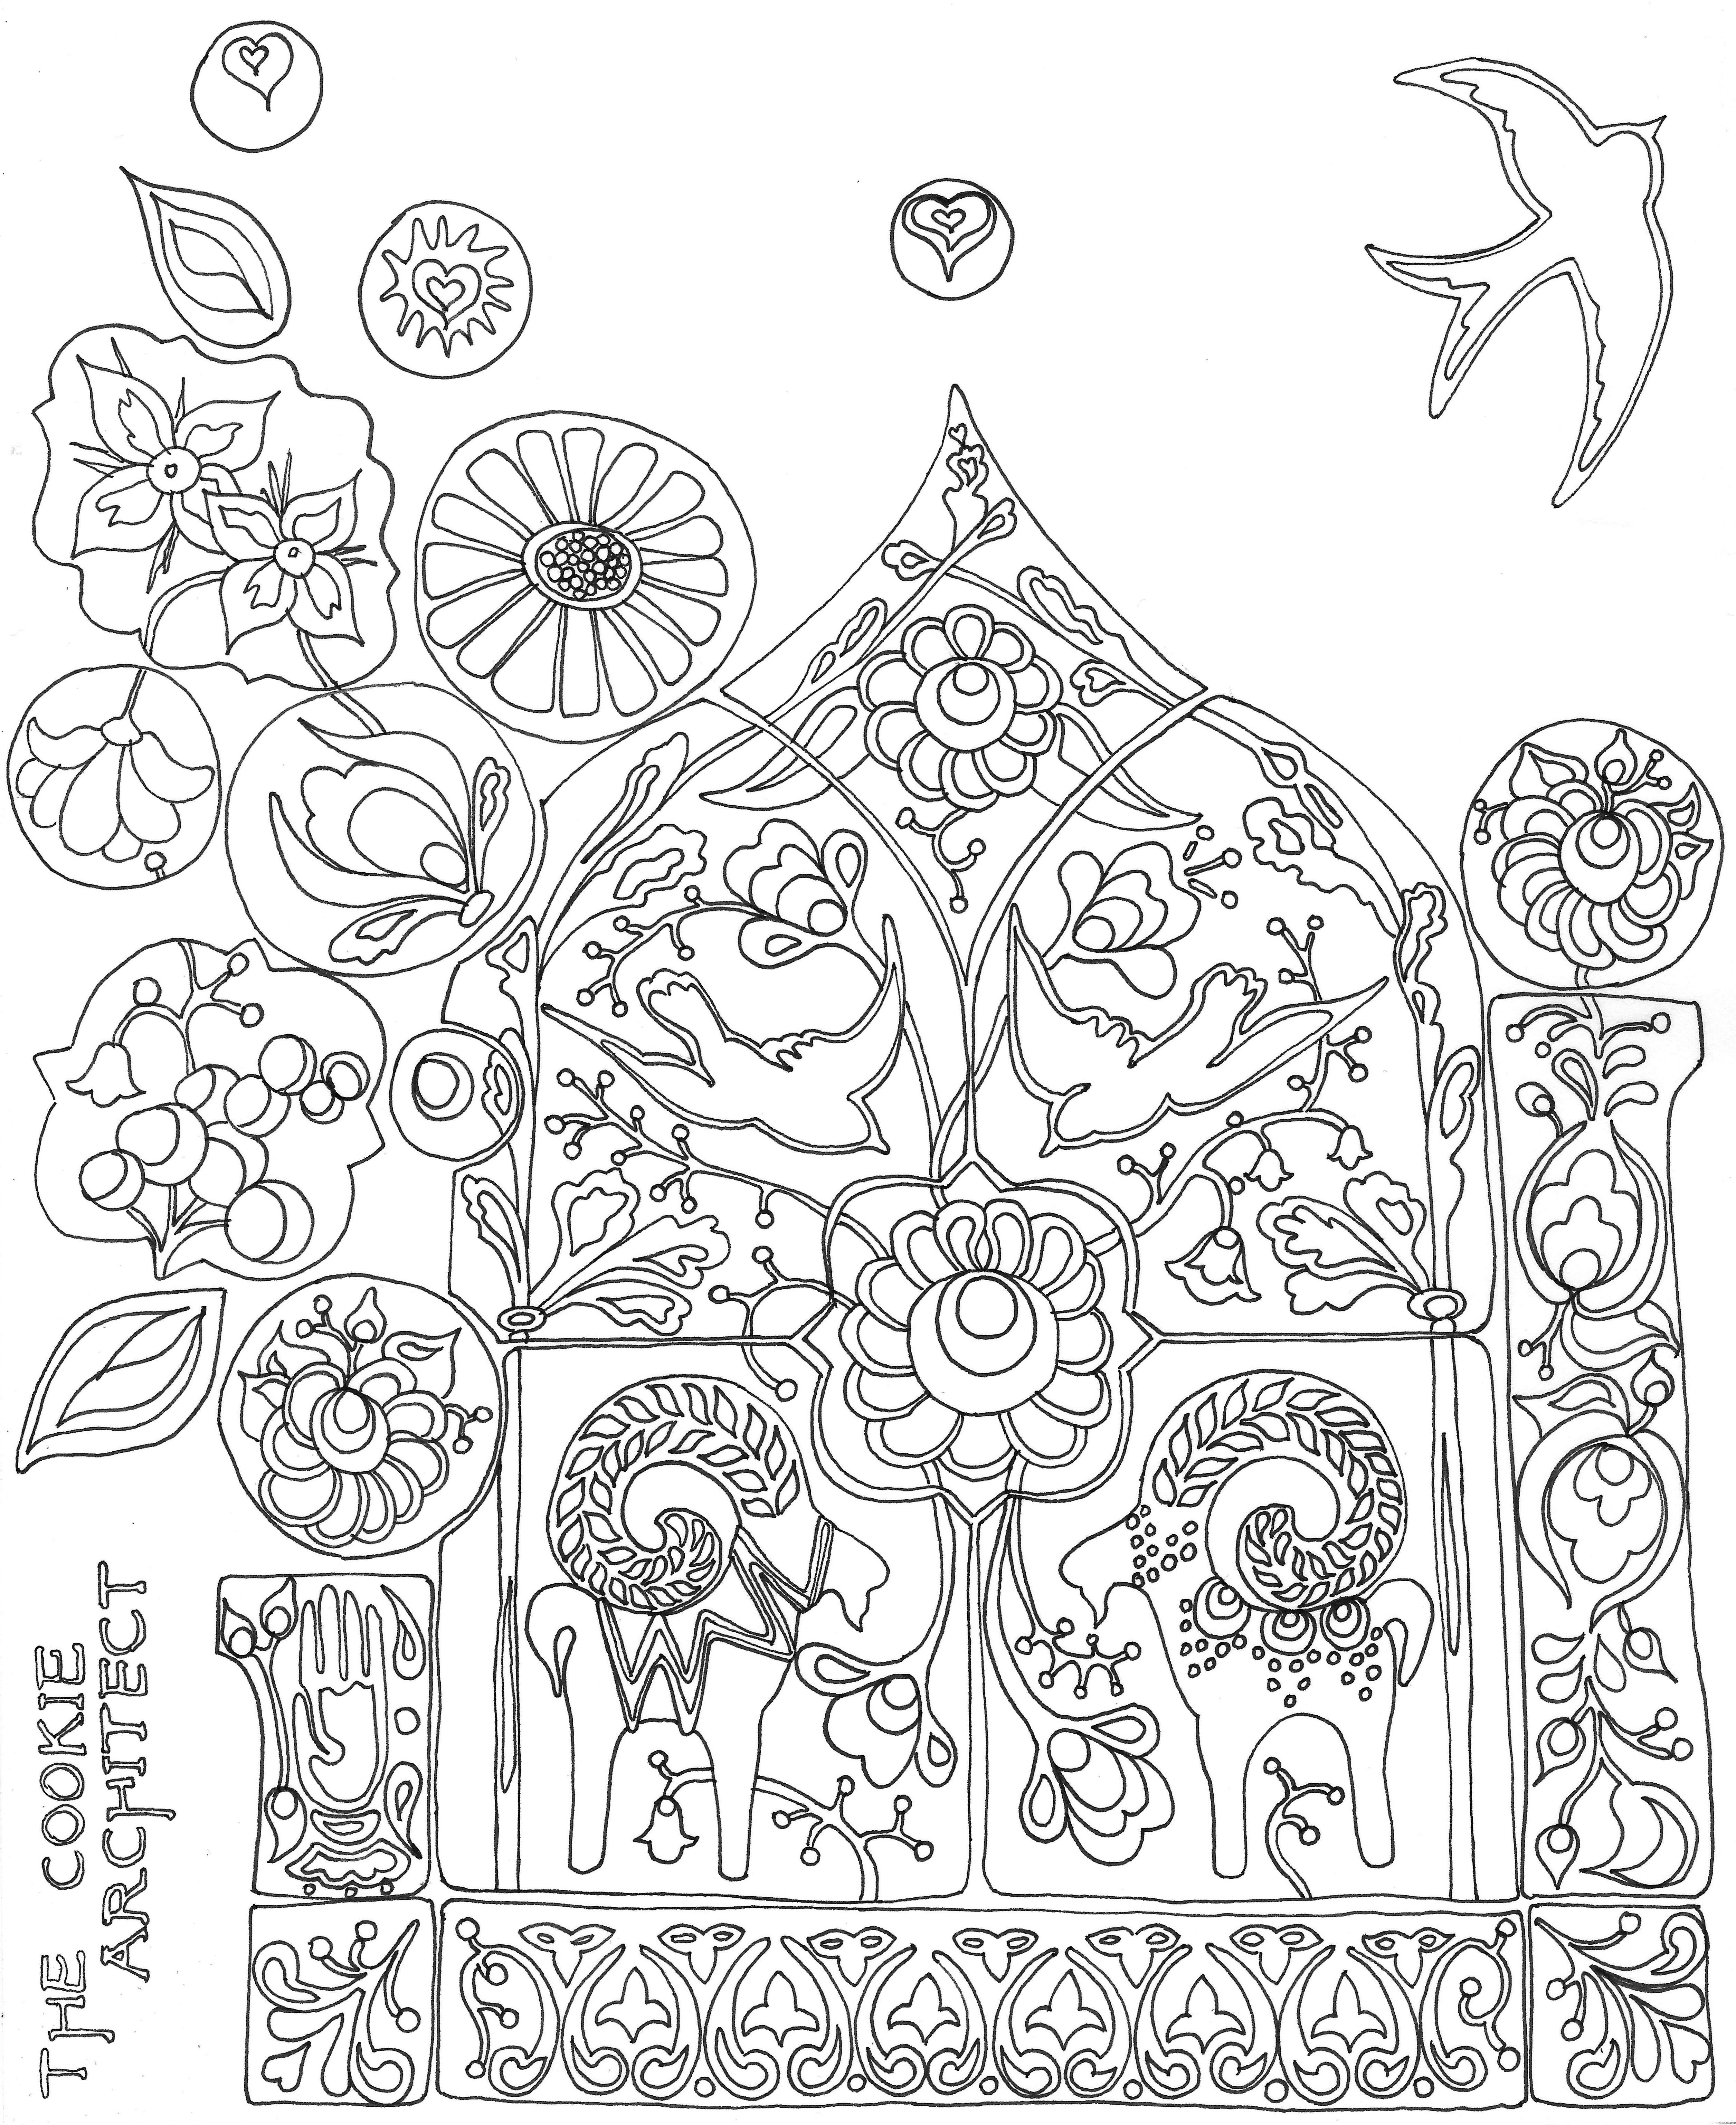 Cookie Tile Explosion Coloring Page